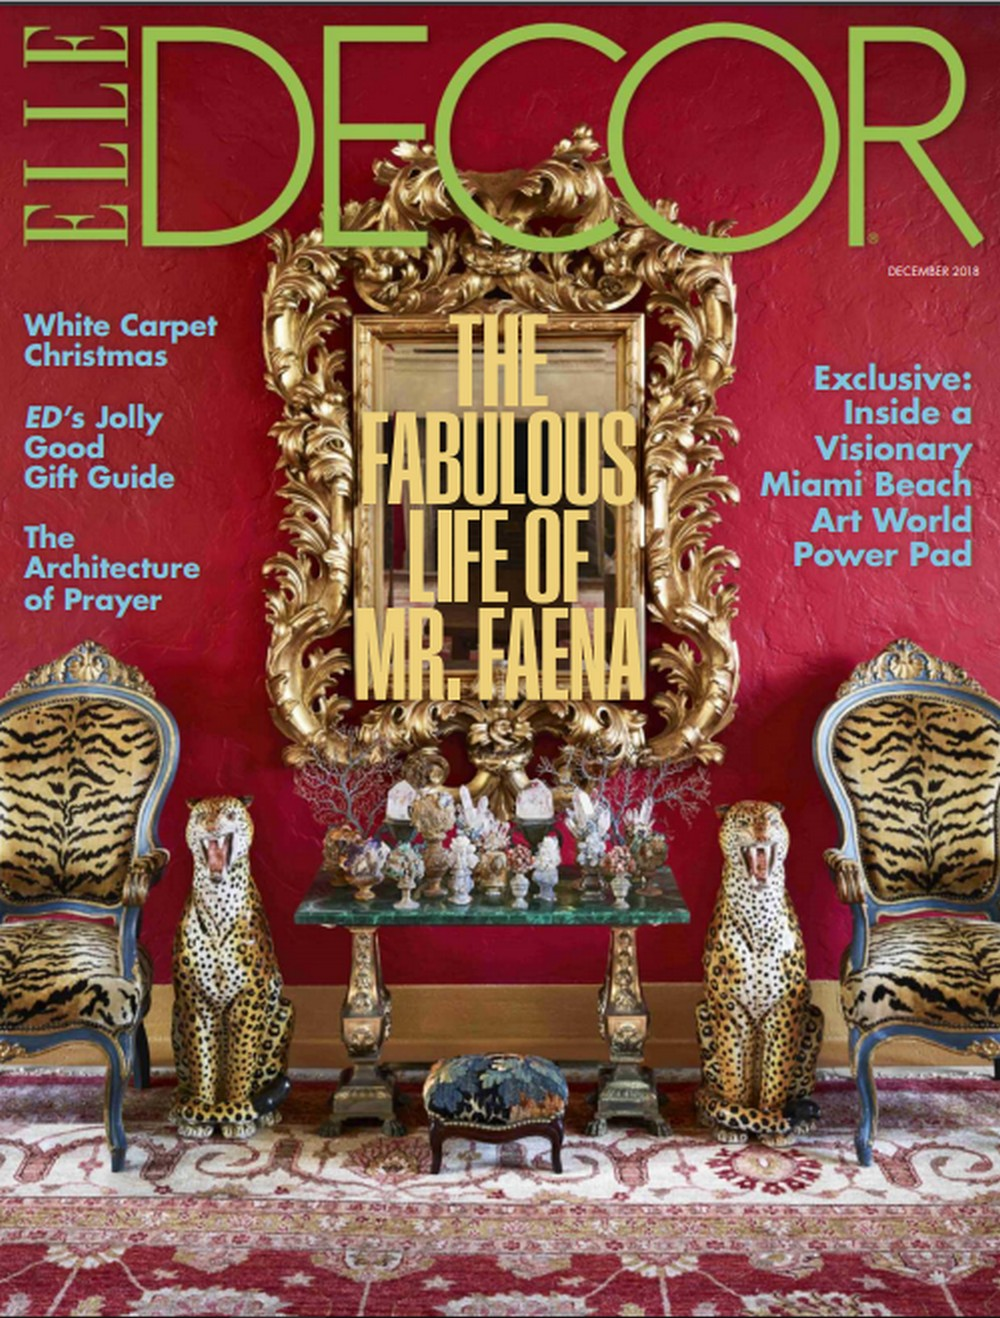 This Week Elle Decor December Issue Is Dress To Impress! Elle Decor This Week Elle Decor December Issue Is Dress To Impress! This Week Elle Decor December Issue Is Dress To Impress